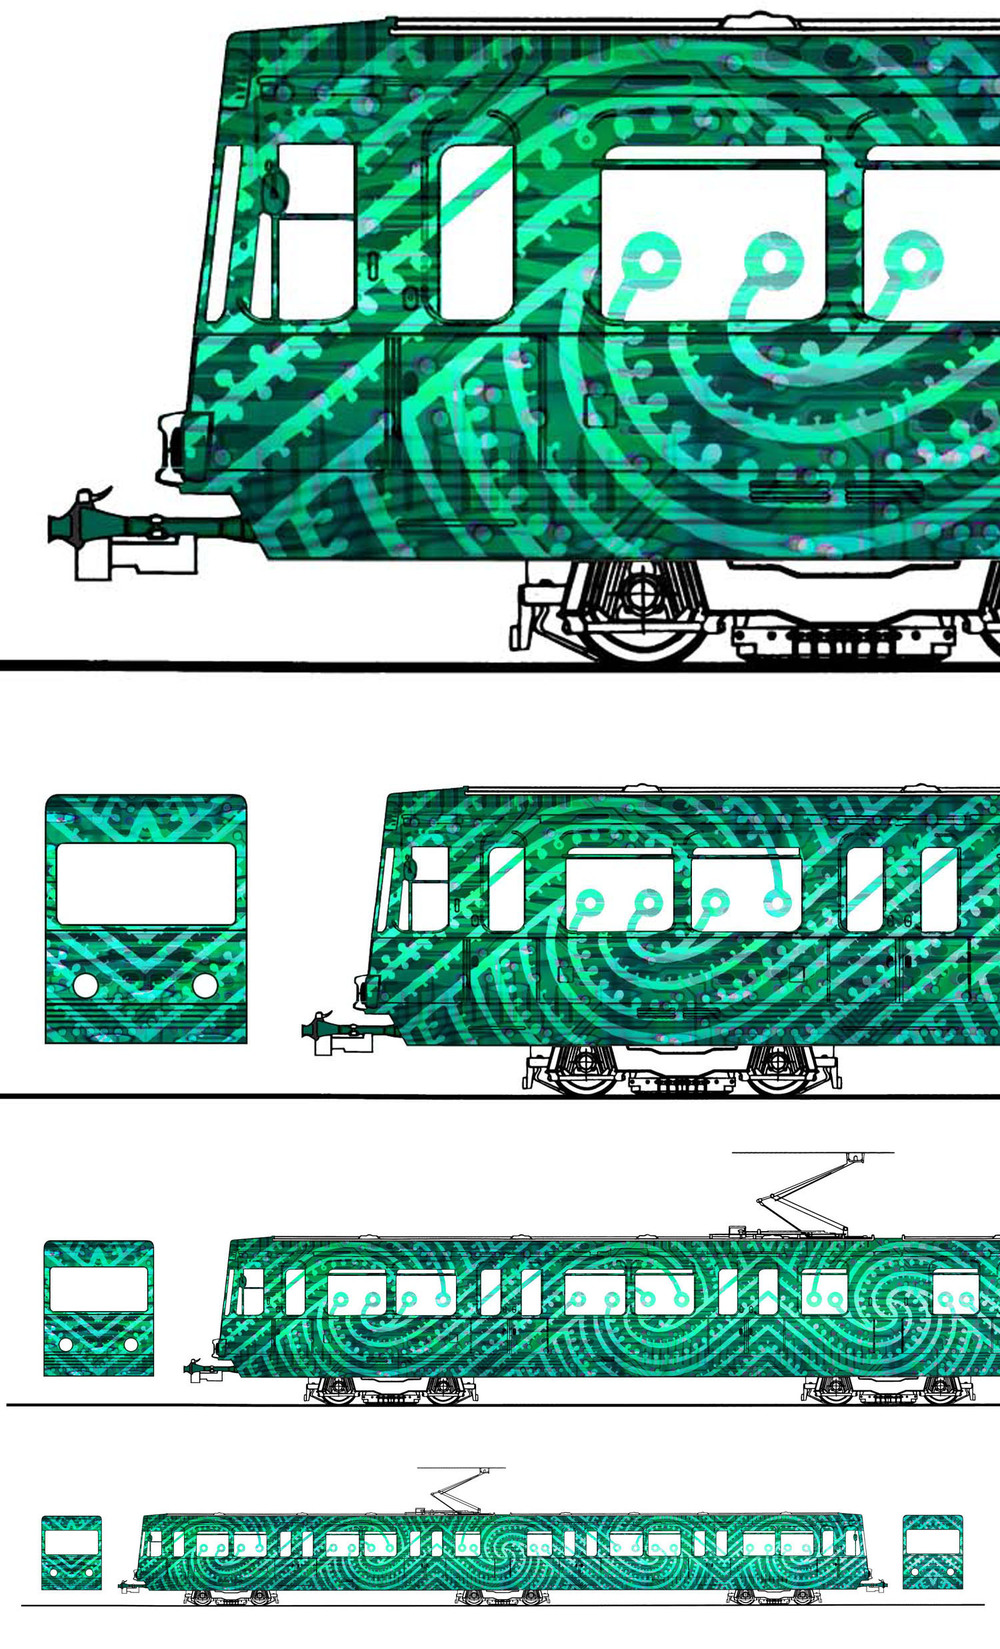 Dusseldorf Tramline – Entry for international tram design award. Designers were asked to reflect an aspect of their national culture.